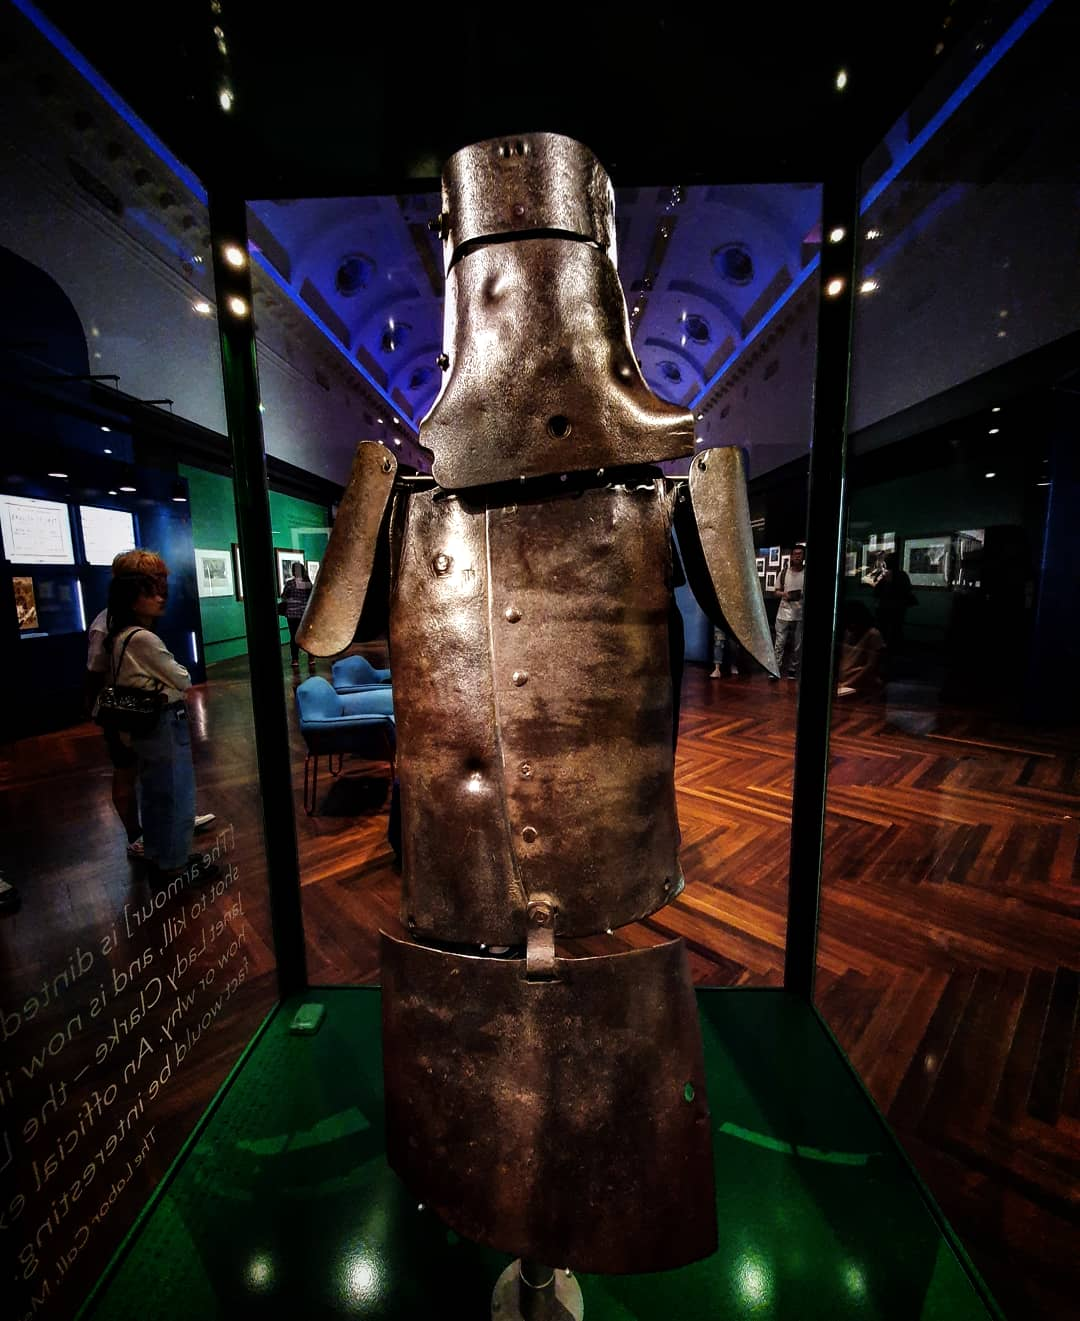 Day 130: Walks 101 and Ned Kelly